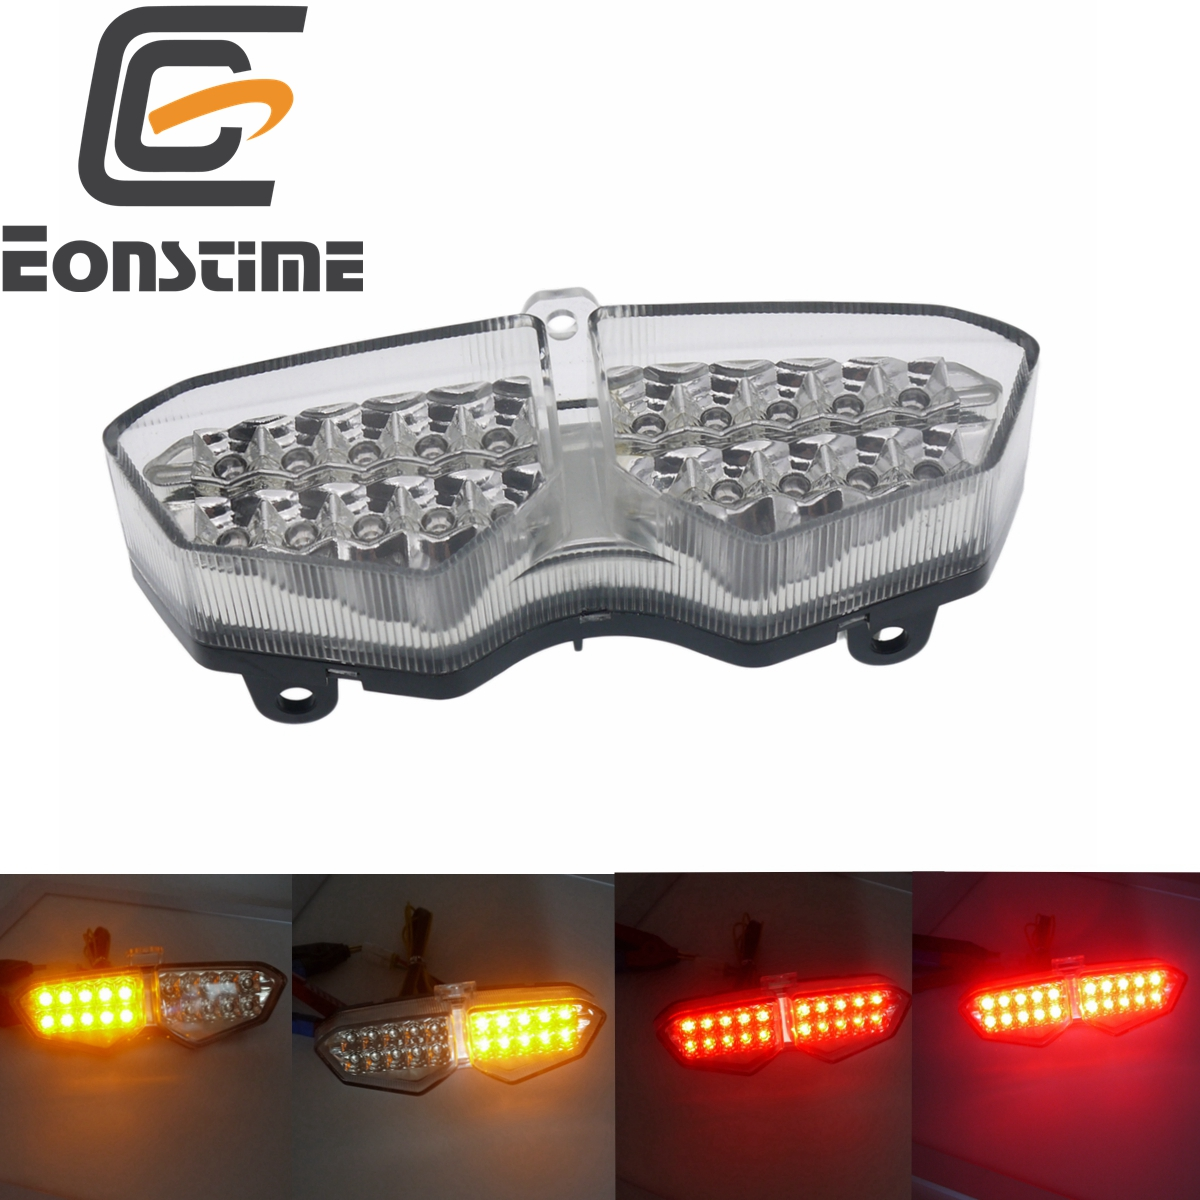 Eonstime Motorcycle Tail Light Integrated Turn Signals Brake Lamp For Yamaha YZF R6 R6S 2003 2004 2005 Motorbike Tail Turn